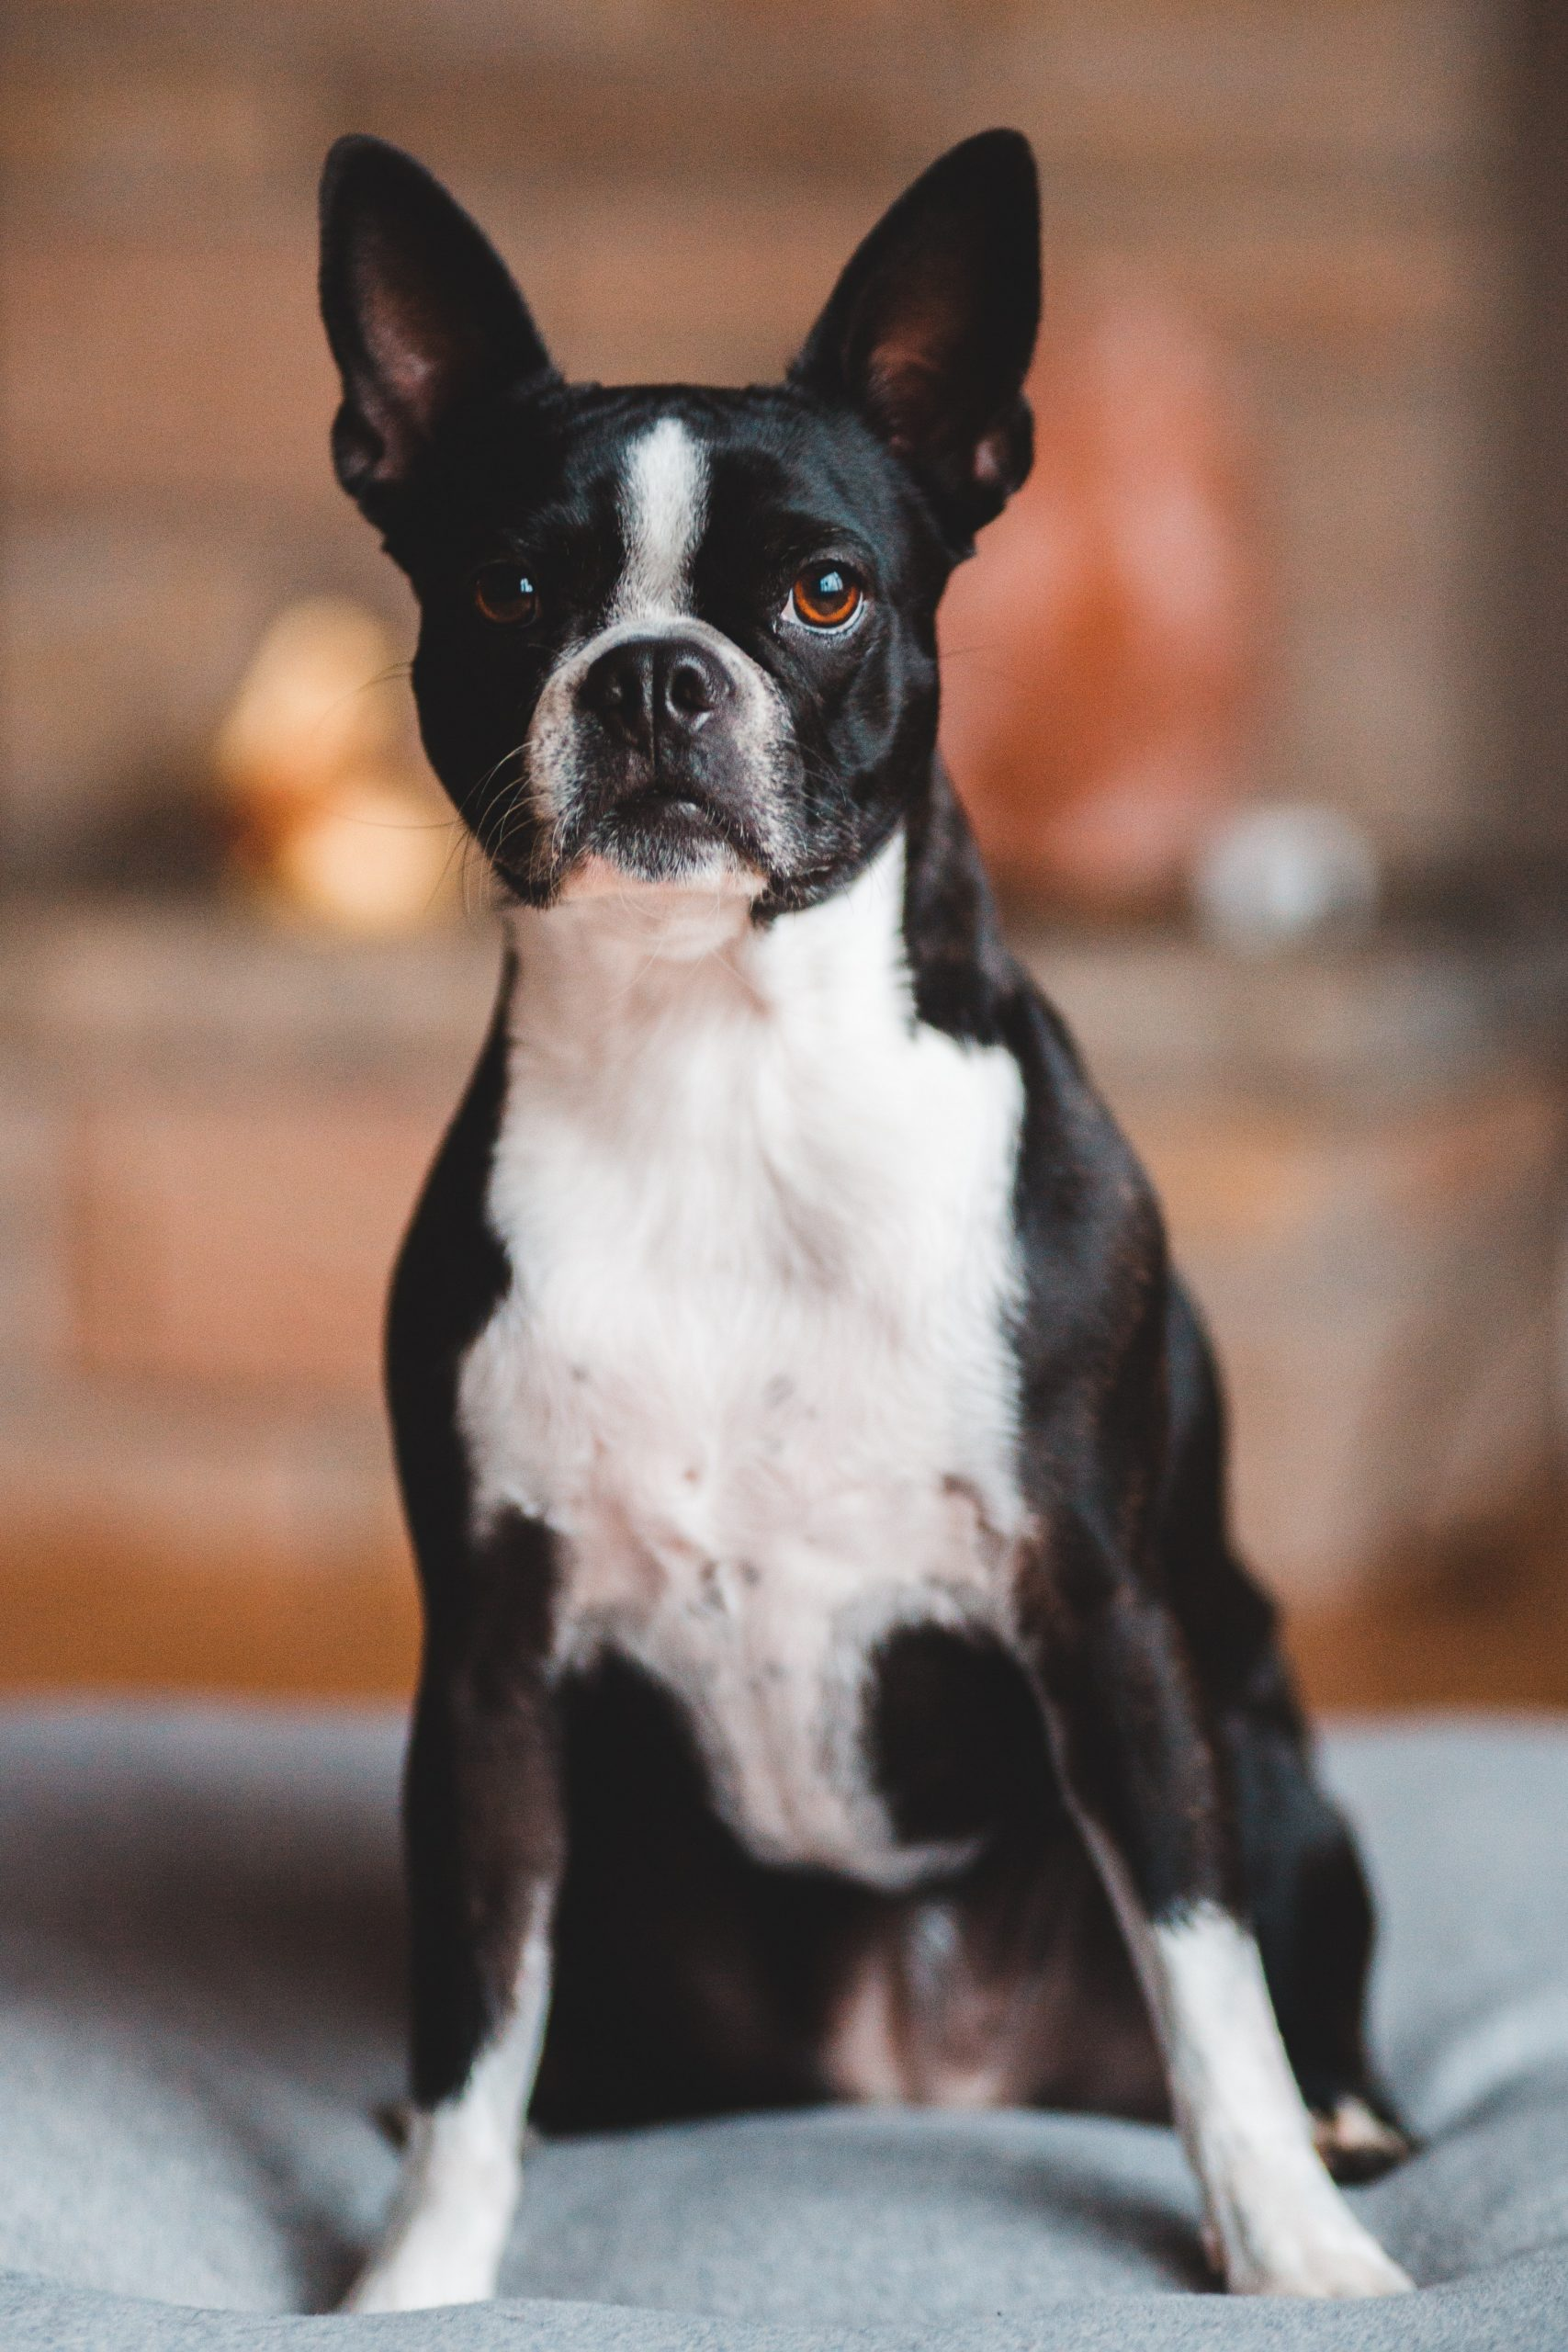 A small and healthy Boston Terrier dog.